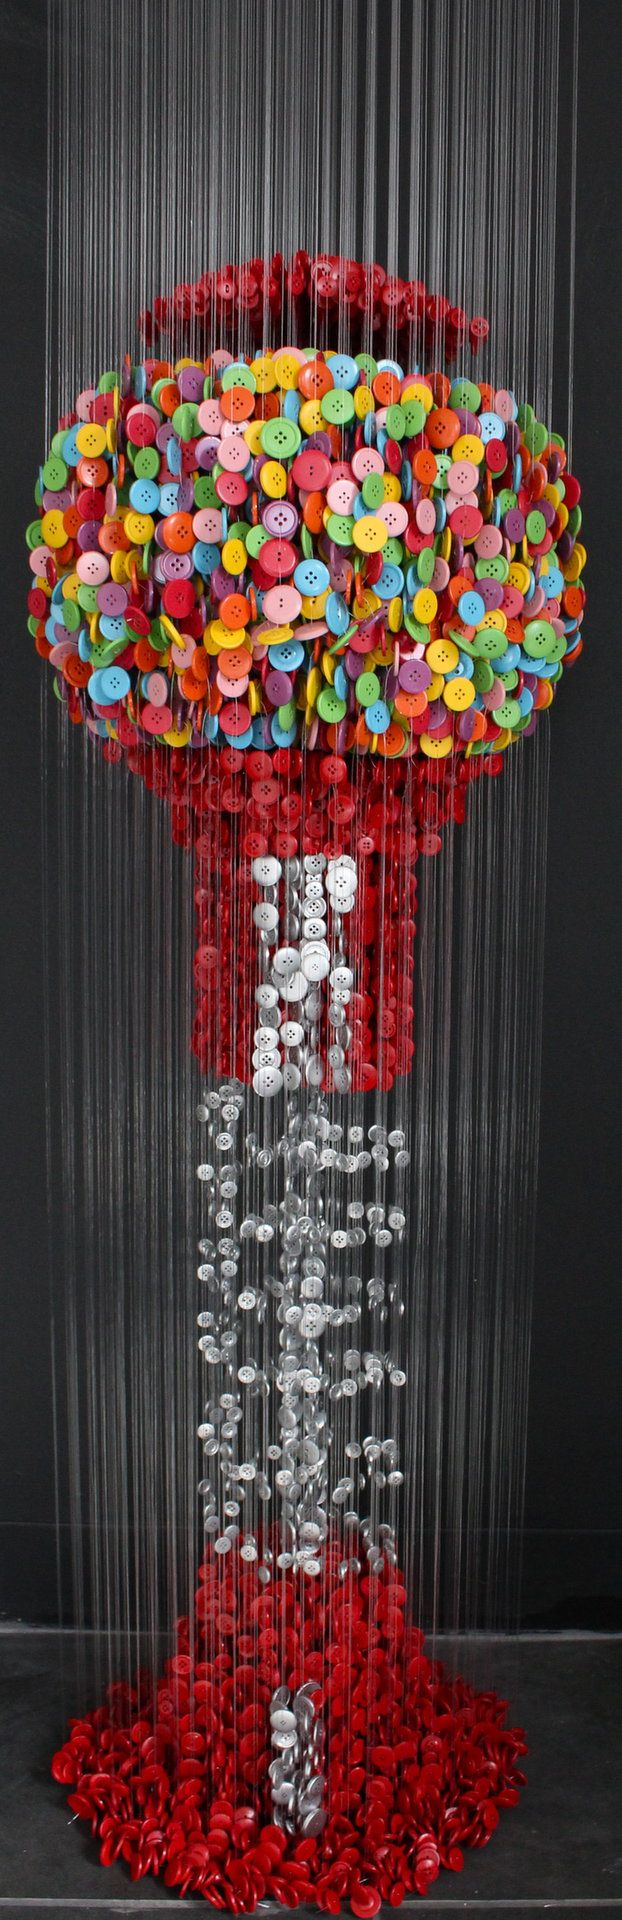 Miami-based artist Augusto Esquivel realistically duplicates objects by suspending thousands of sewing buttons on mere strings. Each strand of his incredible sculptural pieces work with their adjacent string of buttons to create colorful replicas of everything, from a basic geometric cube to a stone fountain covered in flowers and spouting water.